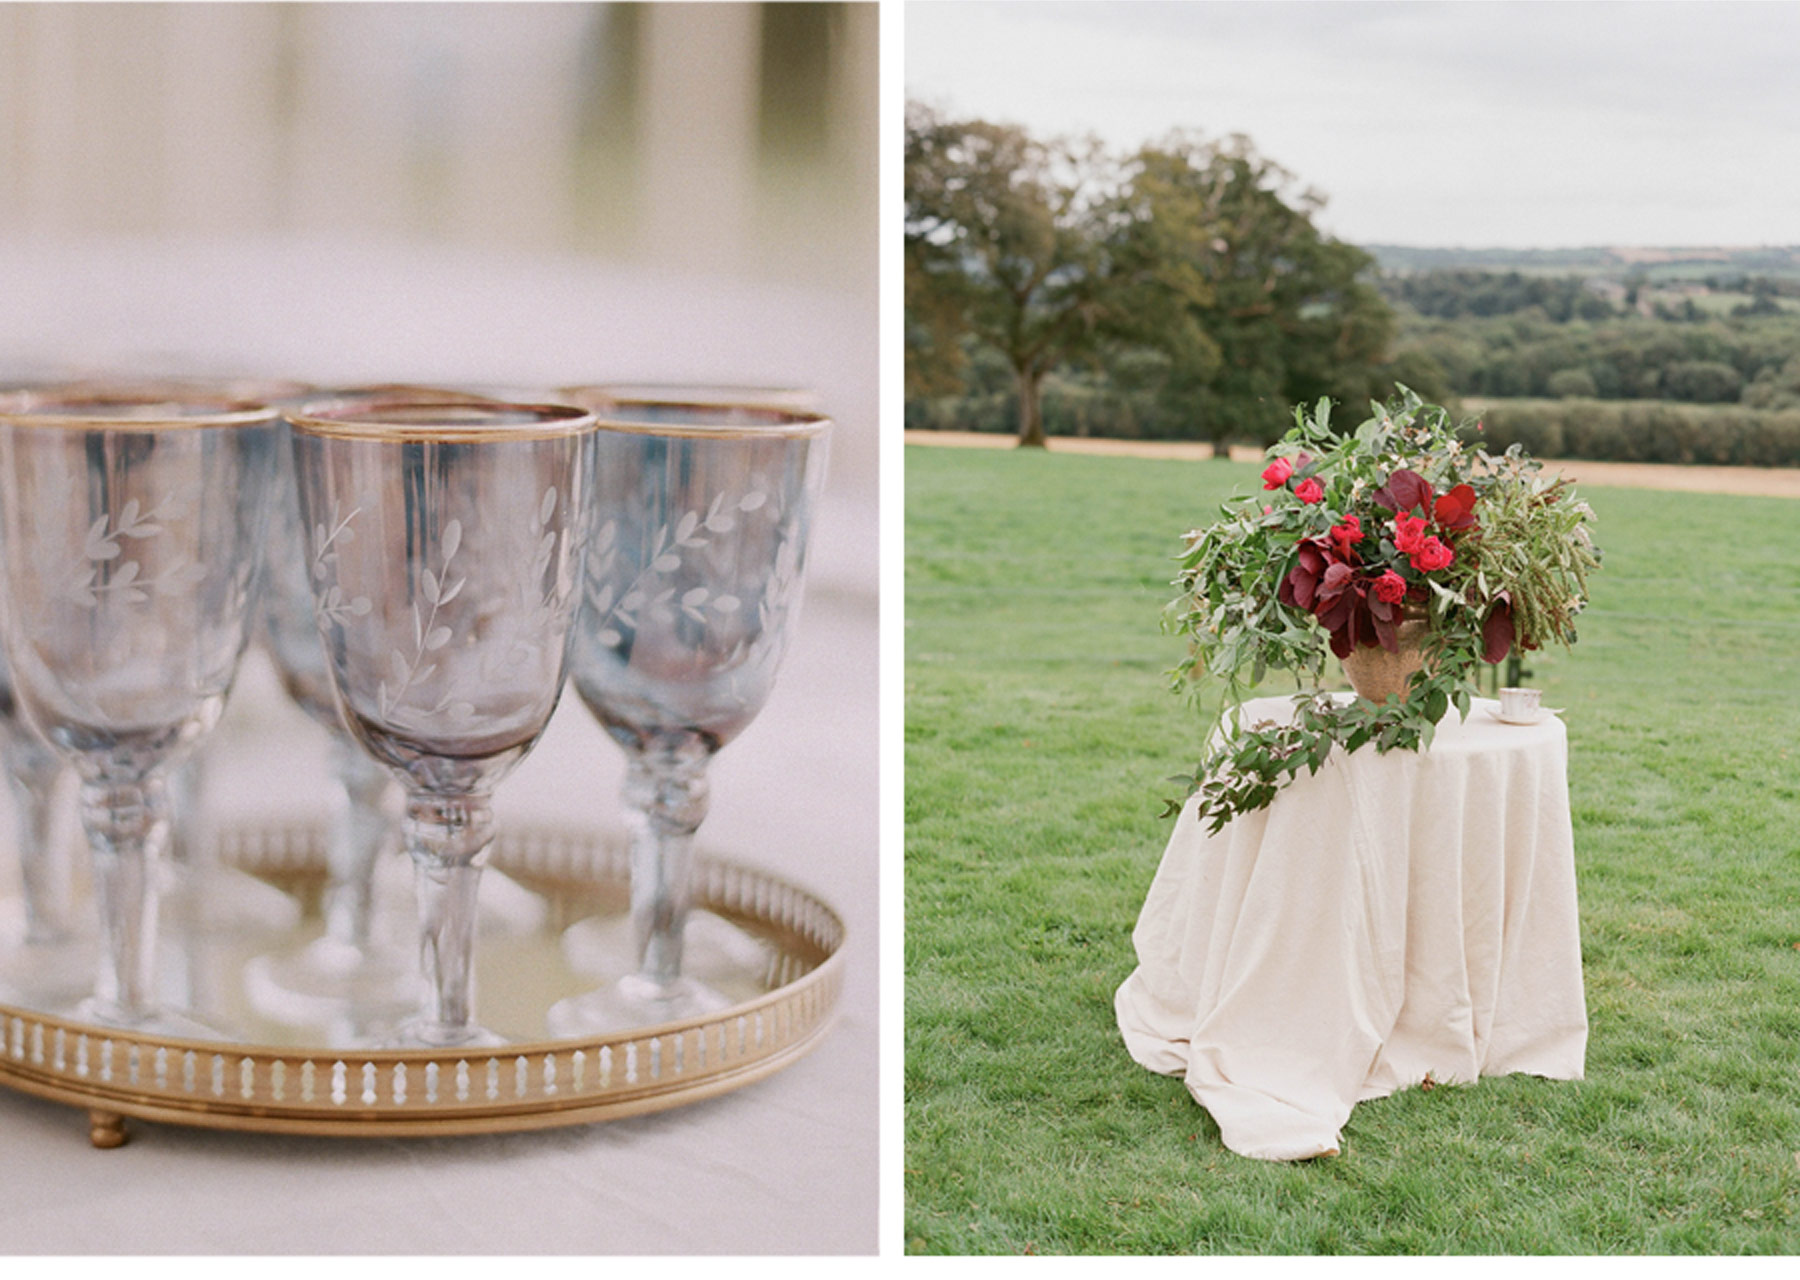 Our Muse - Old World Inspired Wedding - Be inspired by Corbin and Thatcher's romantic, vintage-influenced destination wedding in Ireland - wedding